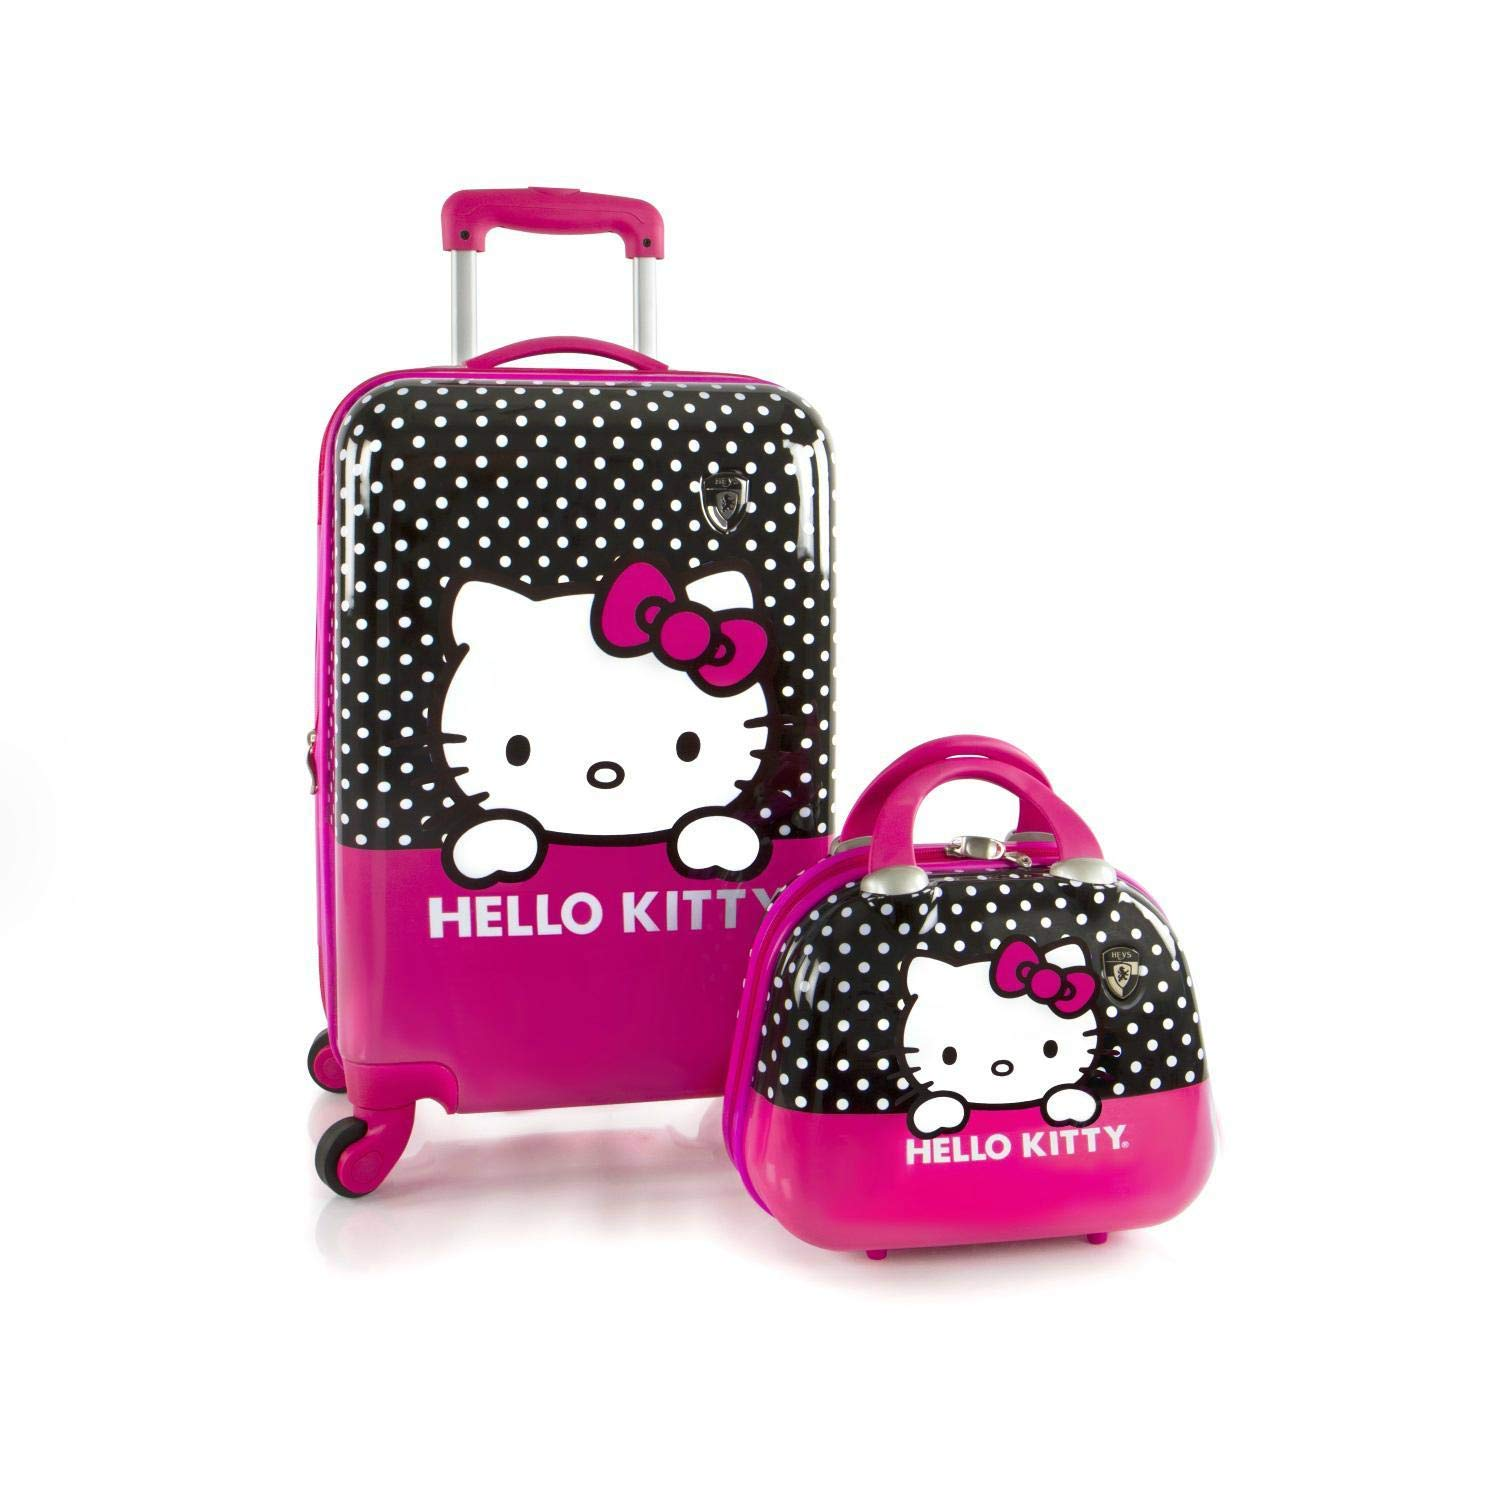 601f90084 Amazon.com | Heys America Unisex Hello Kitty 21